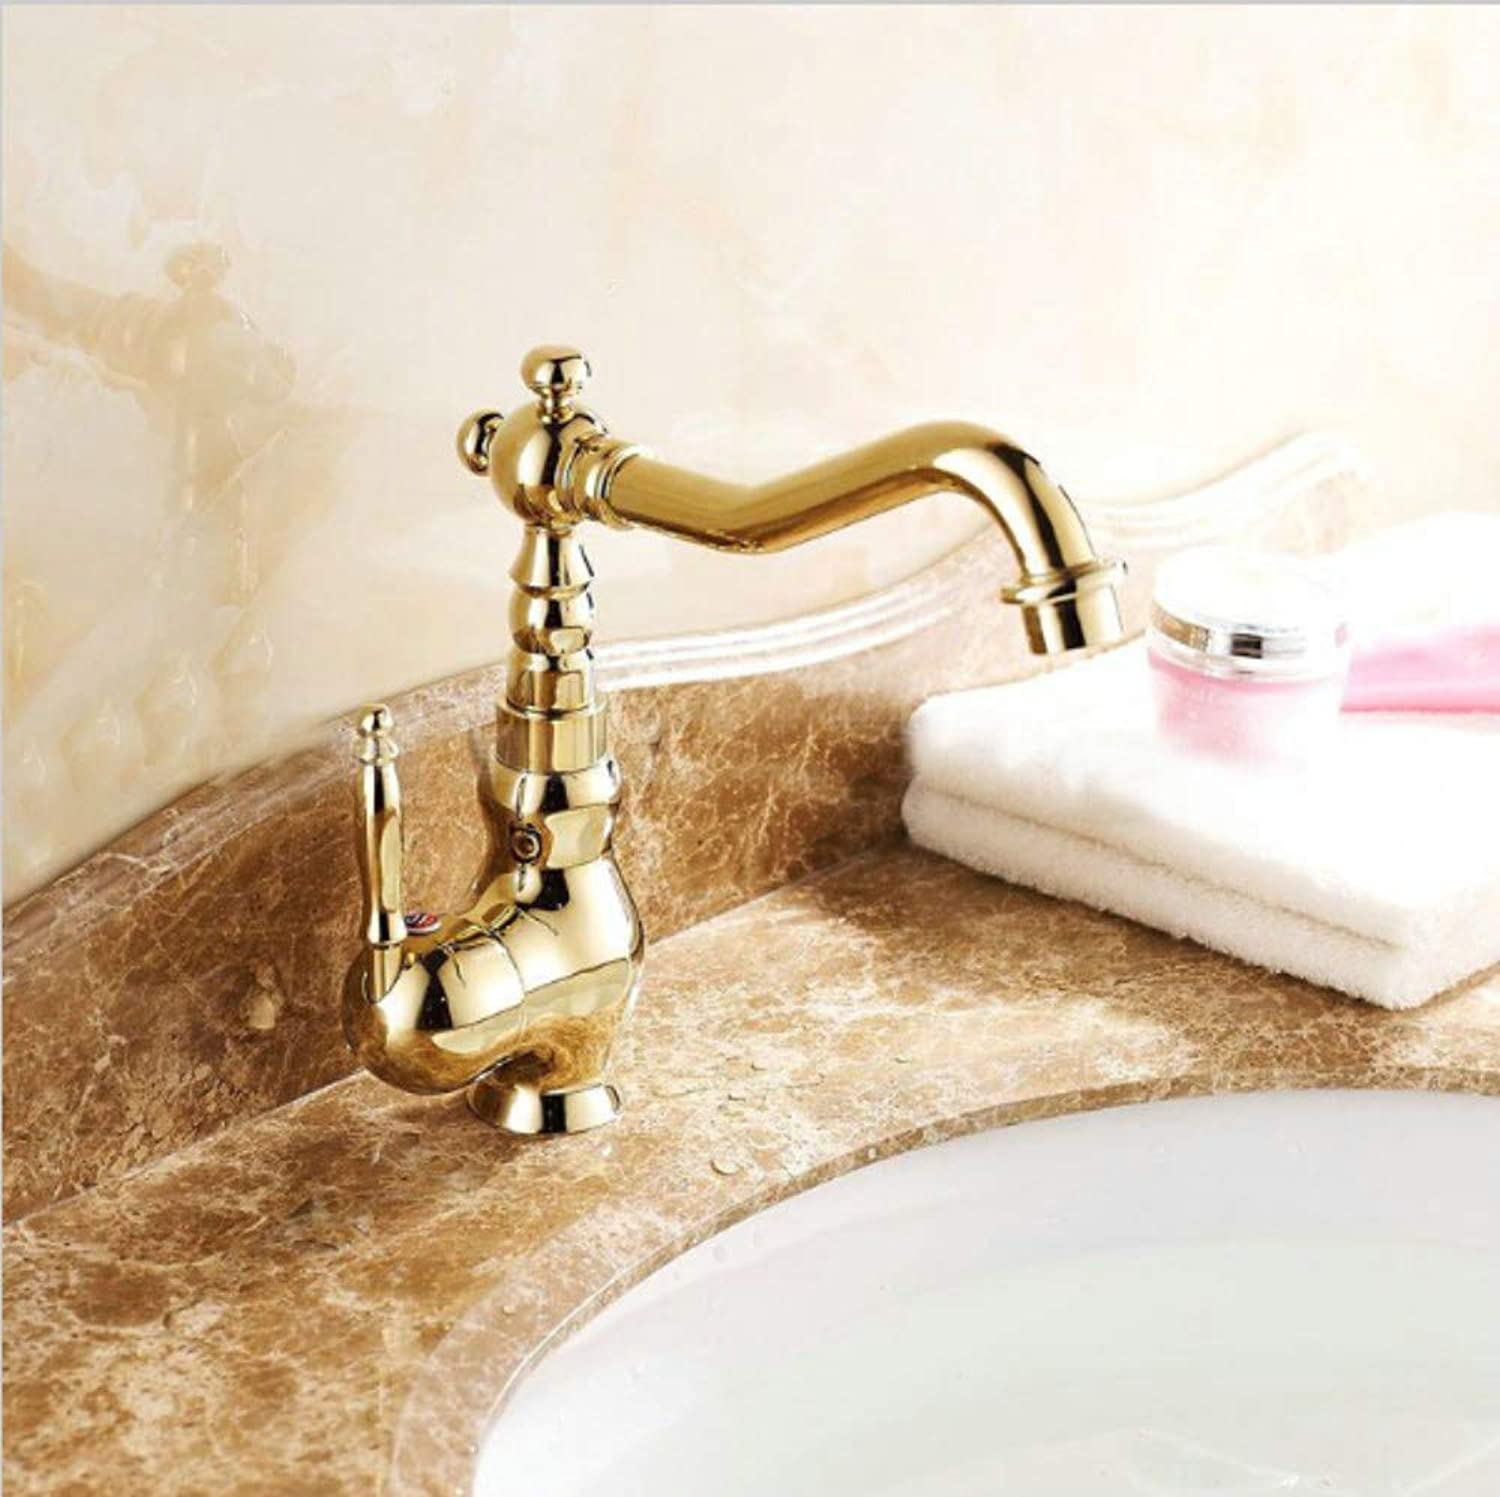 Bathroom Sink Tap gold color Innovative Fashion Style Home Bath Basin Faucet Cold and Hot Water Taps Bathroom Mixer Faucet